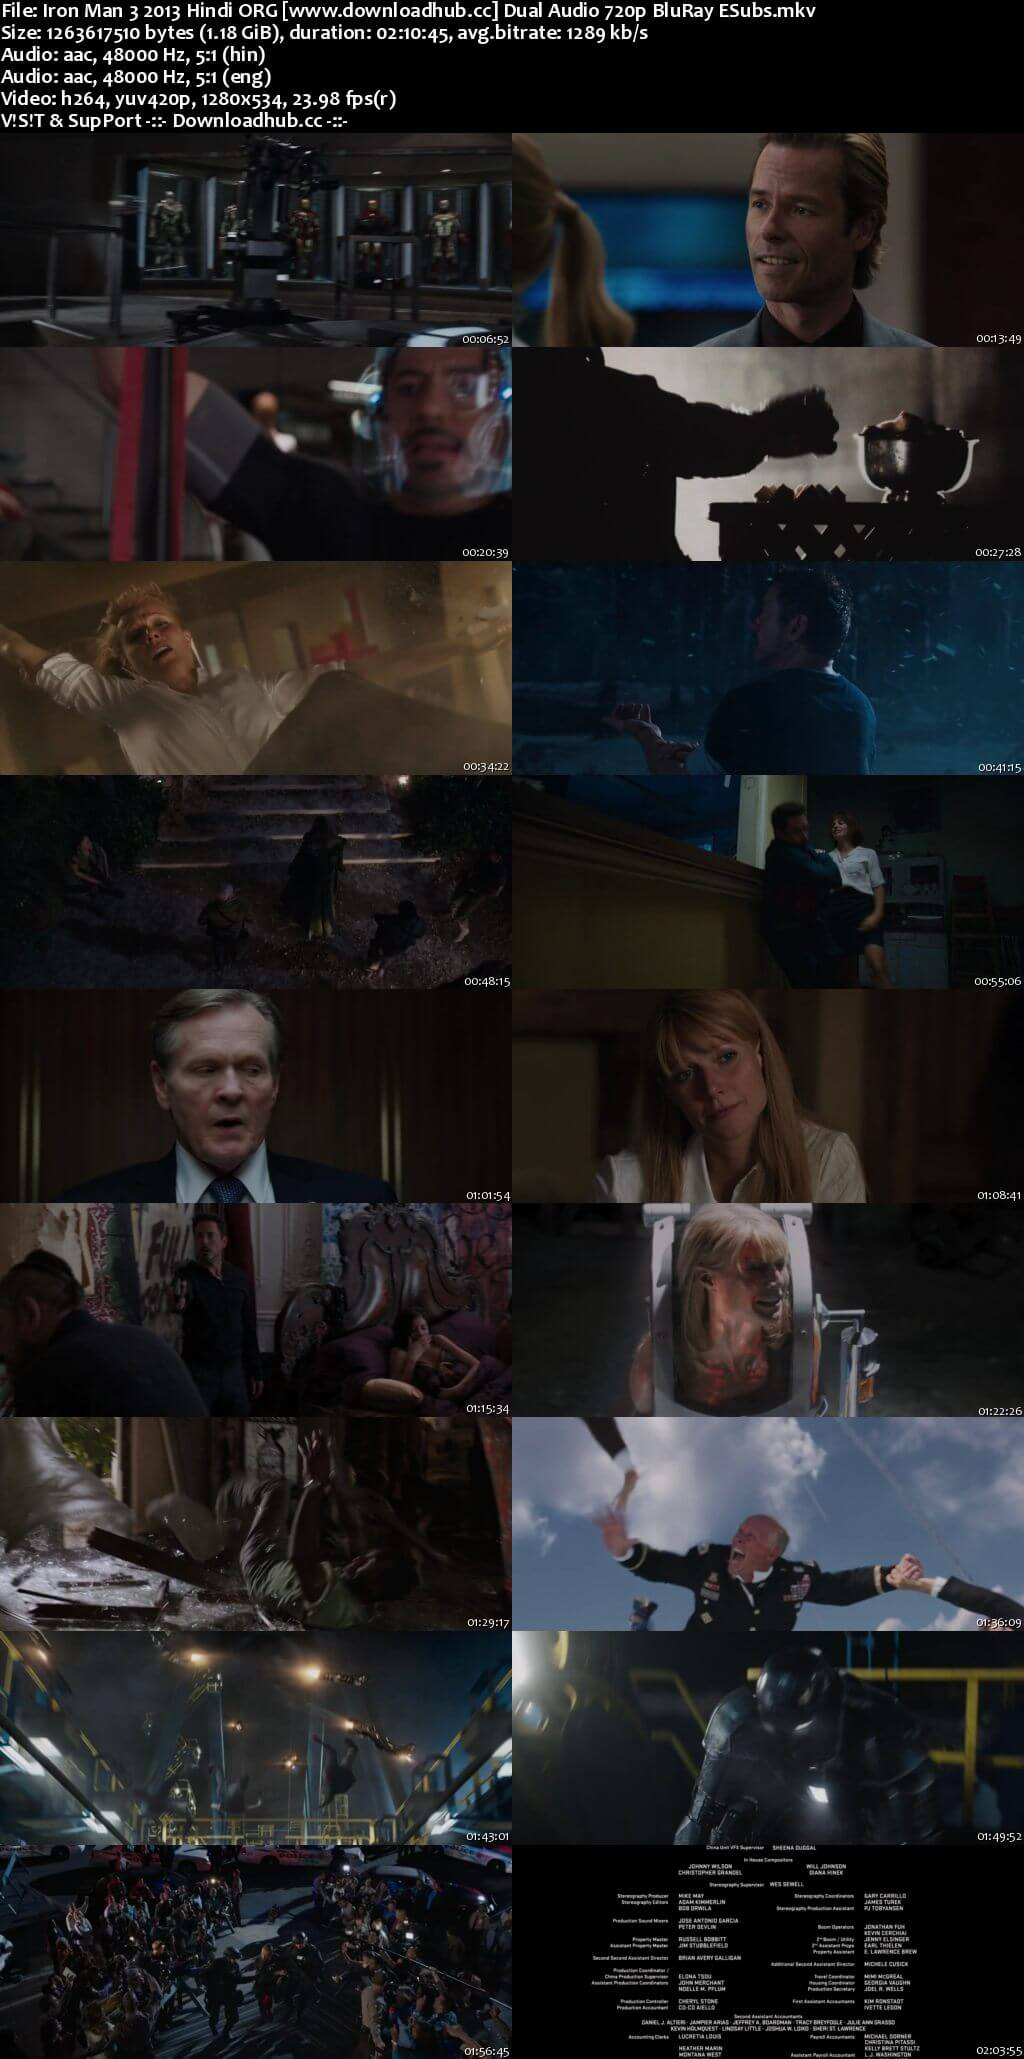 Iron Man 3 2013 Hindi ORG Dual Audio 720p BluRay ESubs